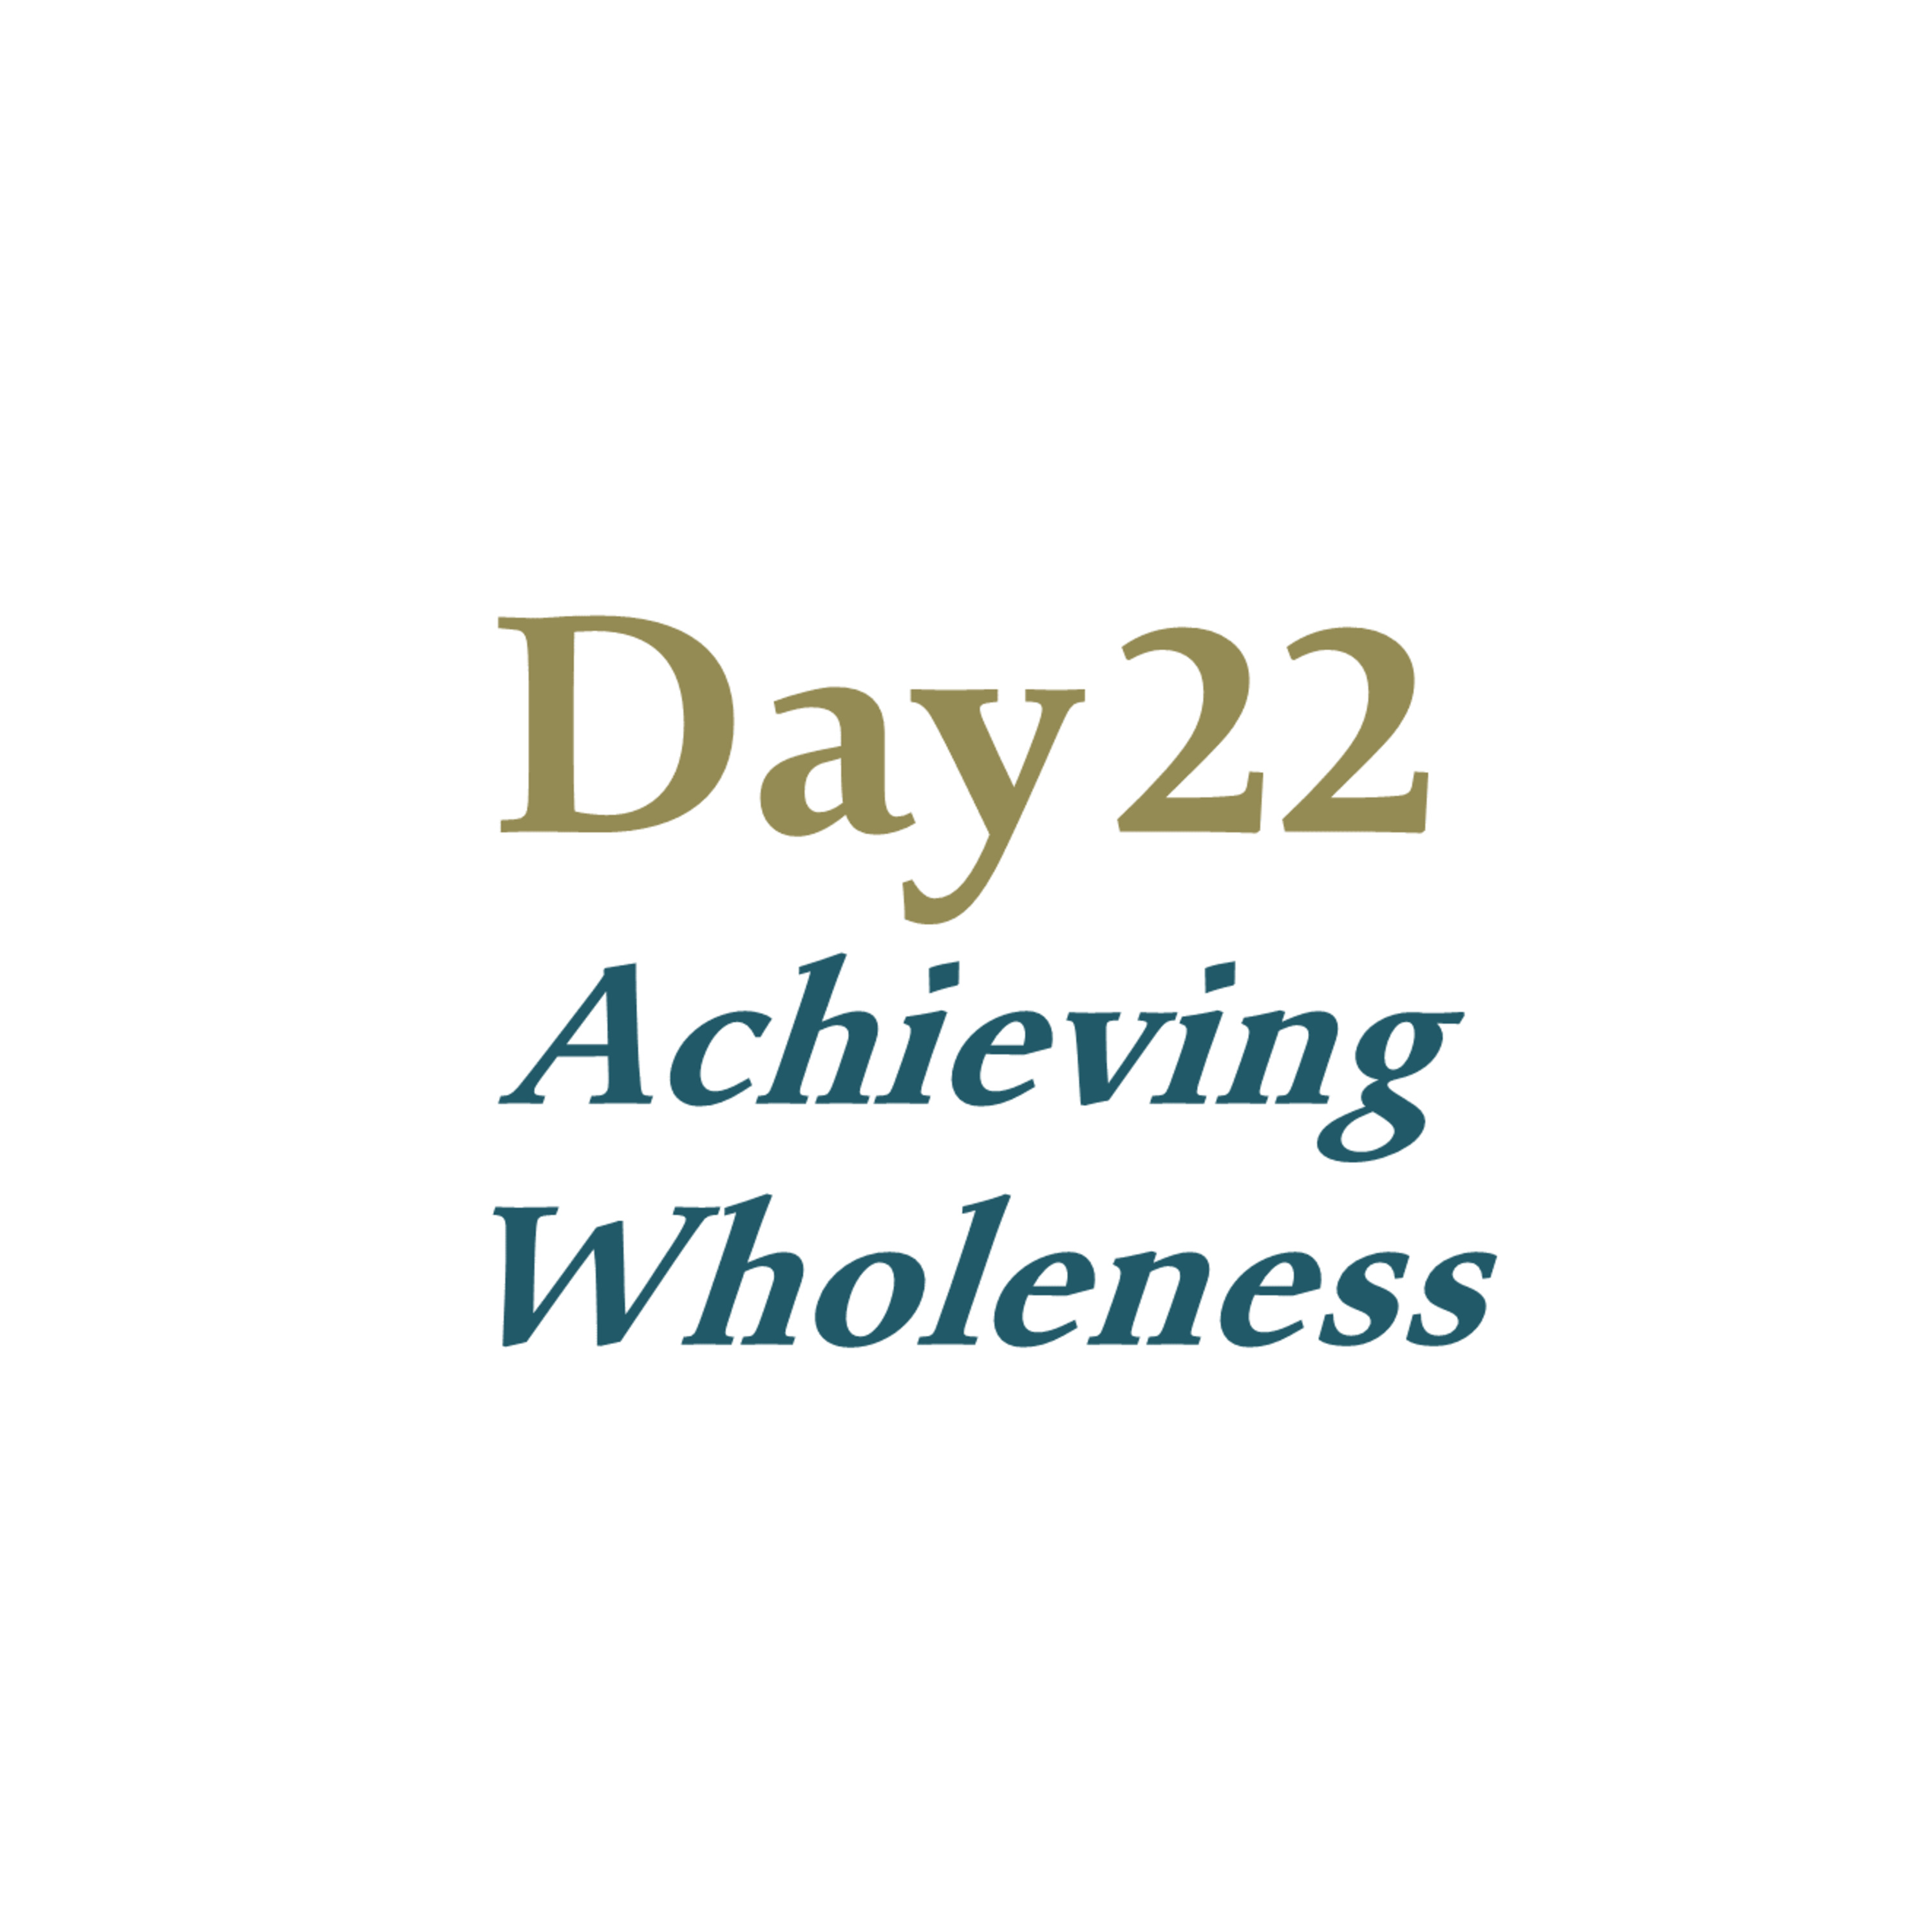 Day 22 - Achieving Wholeness